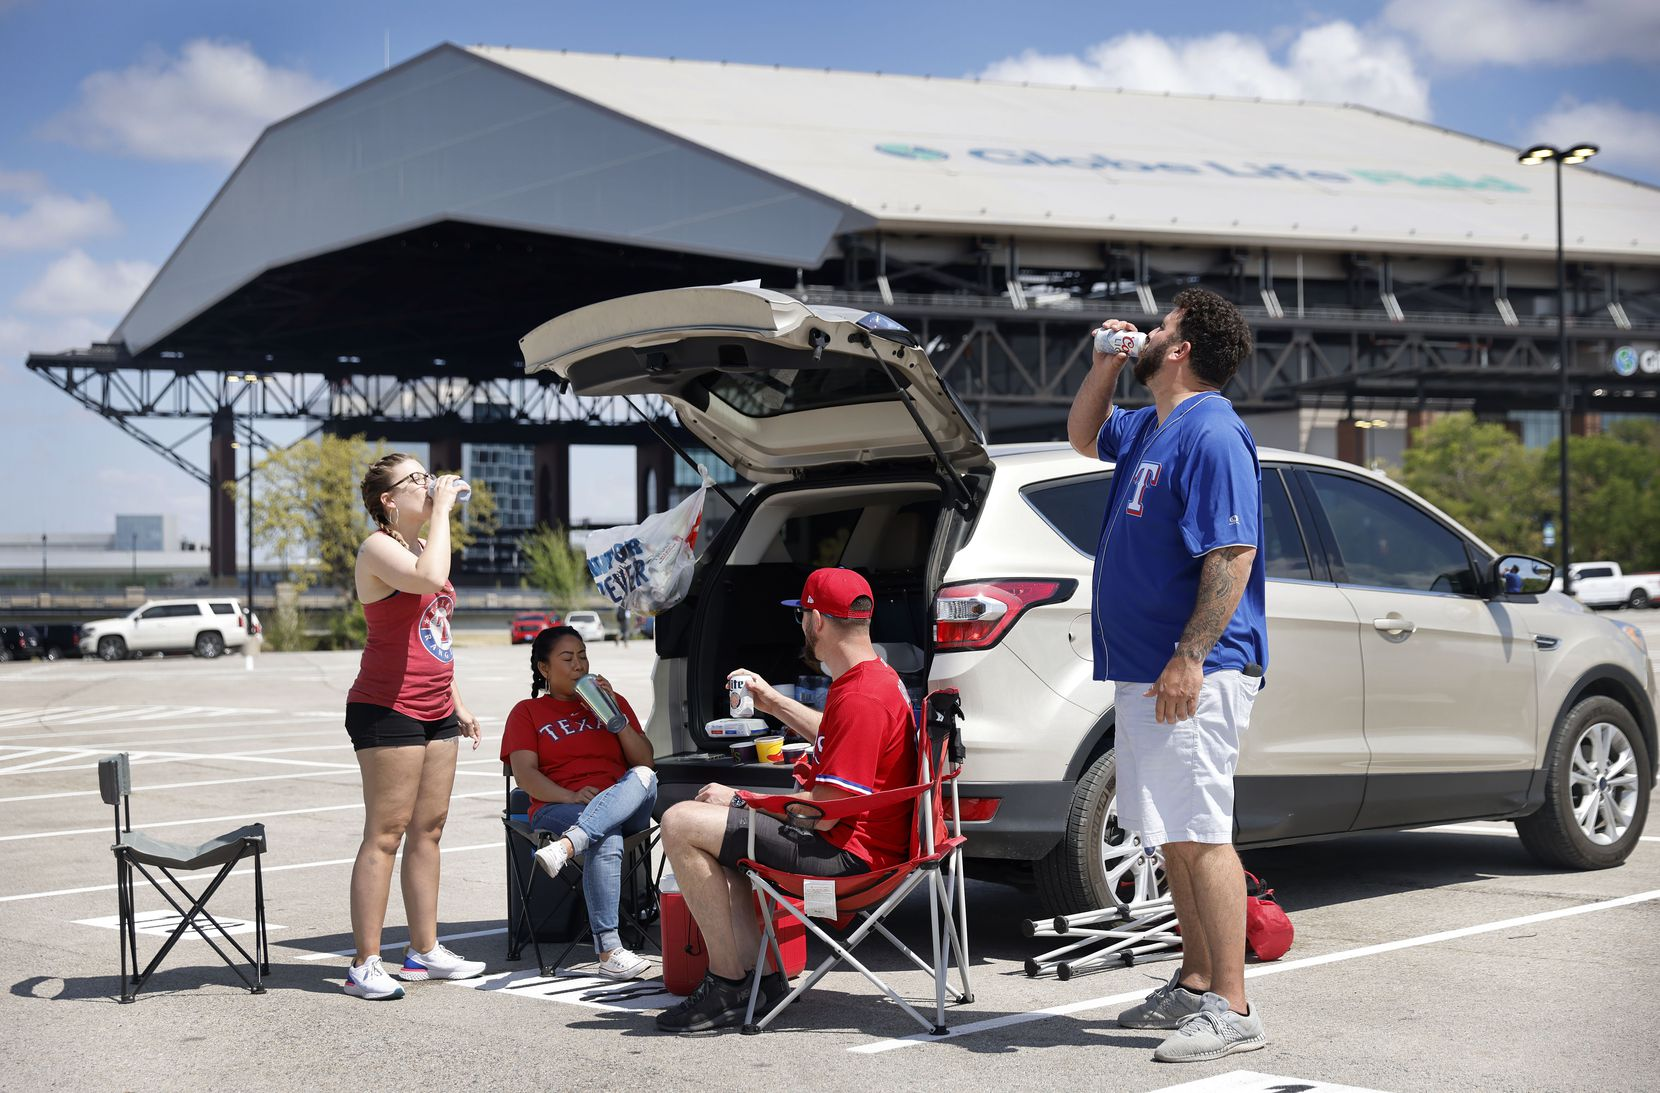 Texas Rangers fans (from left) Tiffany Phillips, Scout Chitavong, Jaime Shannon, and Cameron Johnson of Fort Worth enjoy an Opening Day tailgate party outside of Globe Life Field in Arlington, Monday, April 5, 2021. The Rangers are facing the Toronto Blue Jays in the home opener. (Tom Fox/The Dallas Morning News)